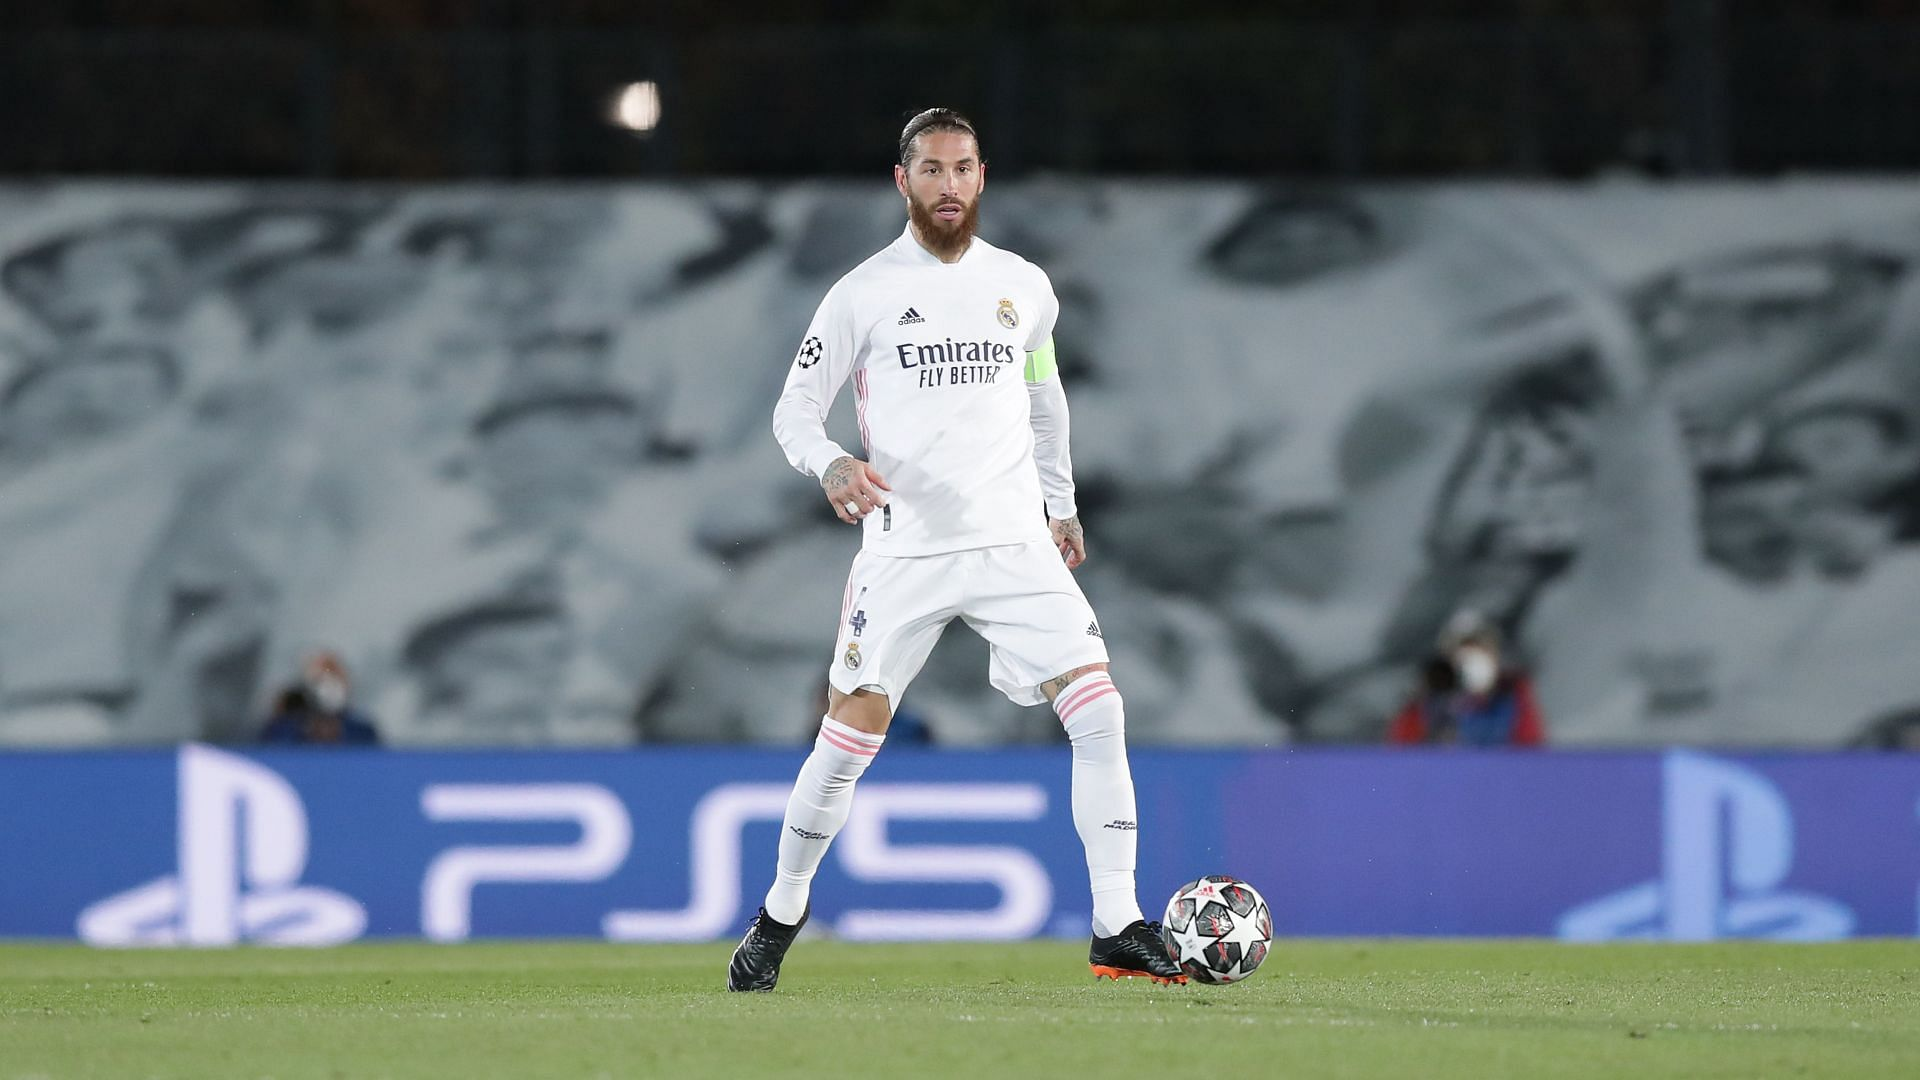 PSG are planning to hand Sergio Ramos his much-anticipated debut against Marseille.